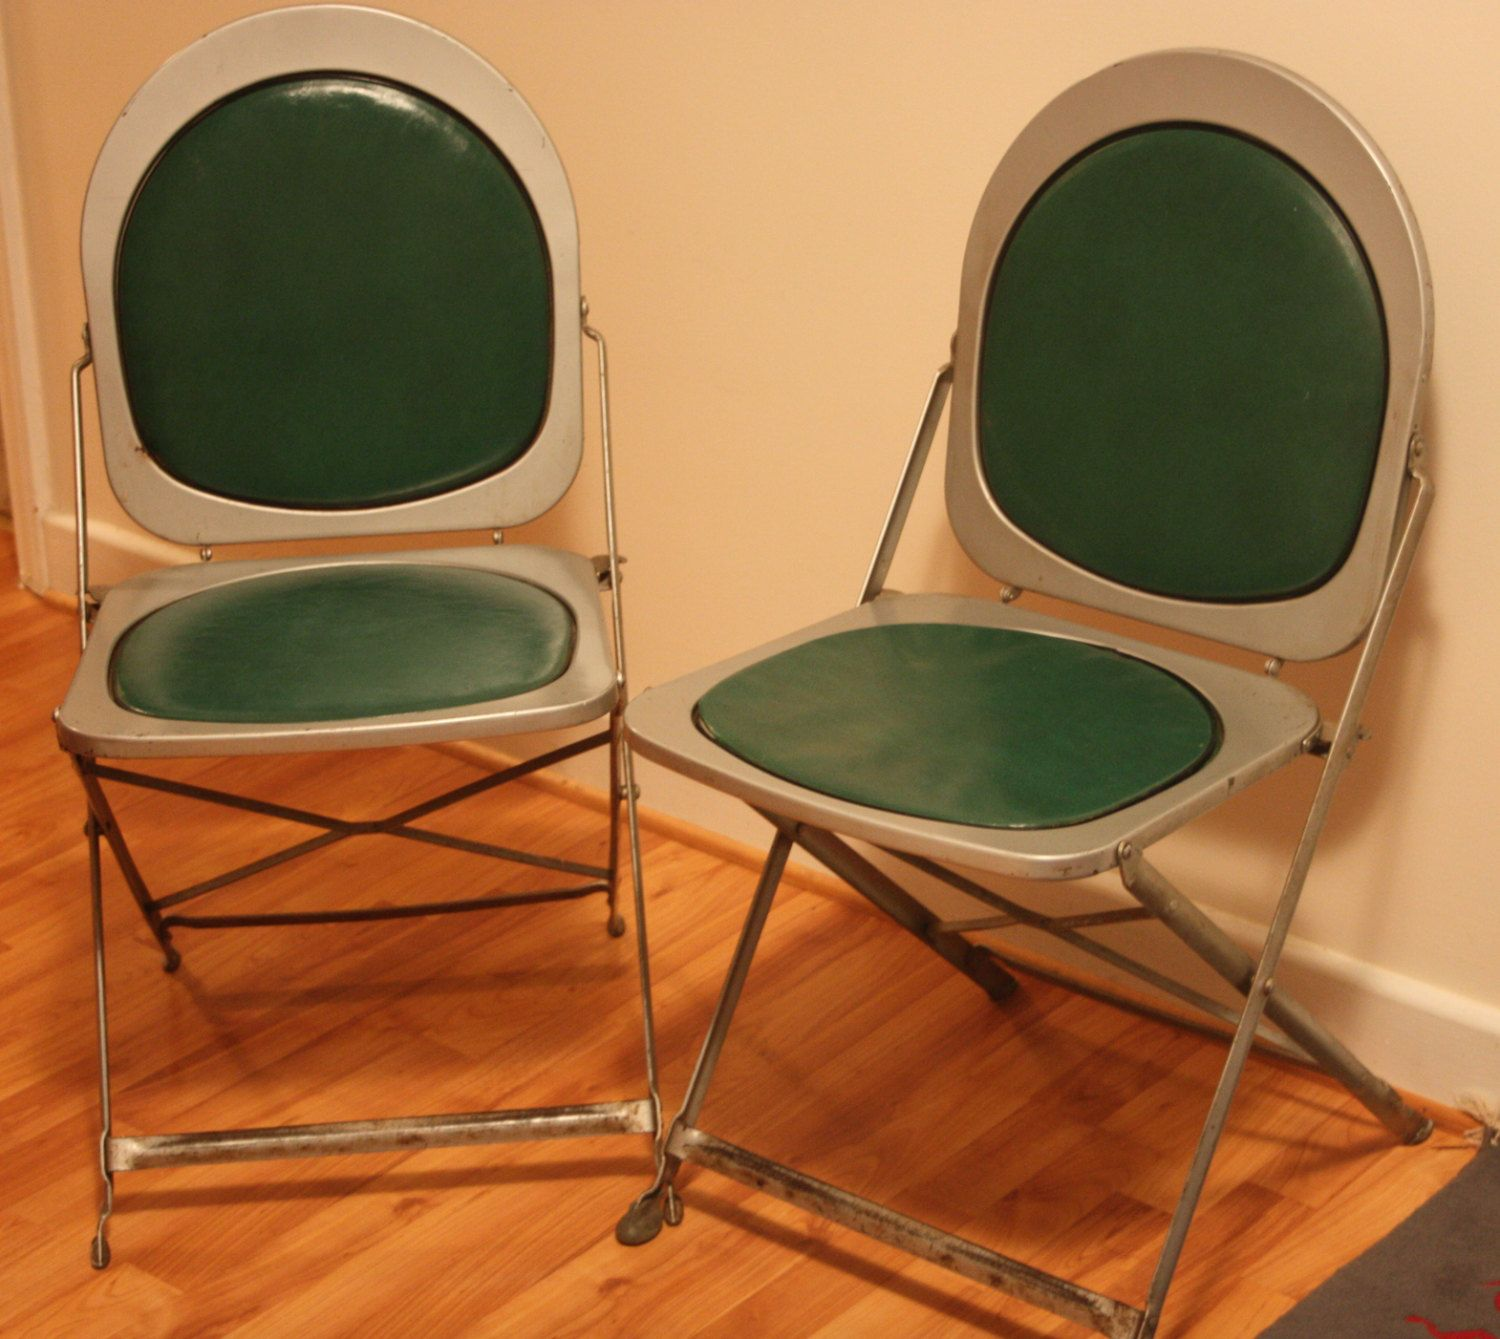 Vintage Deco Chairs Set Of 2 Brewer Titchener Corp BTC Hostess Industrial  Chic 1940s Metal Folding Chairs In Green By ArtBarn On Etsy